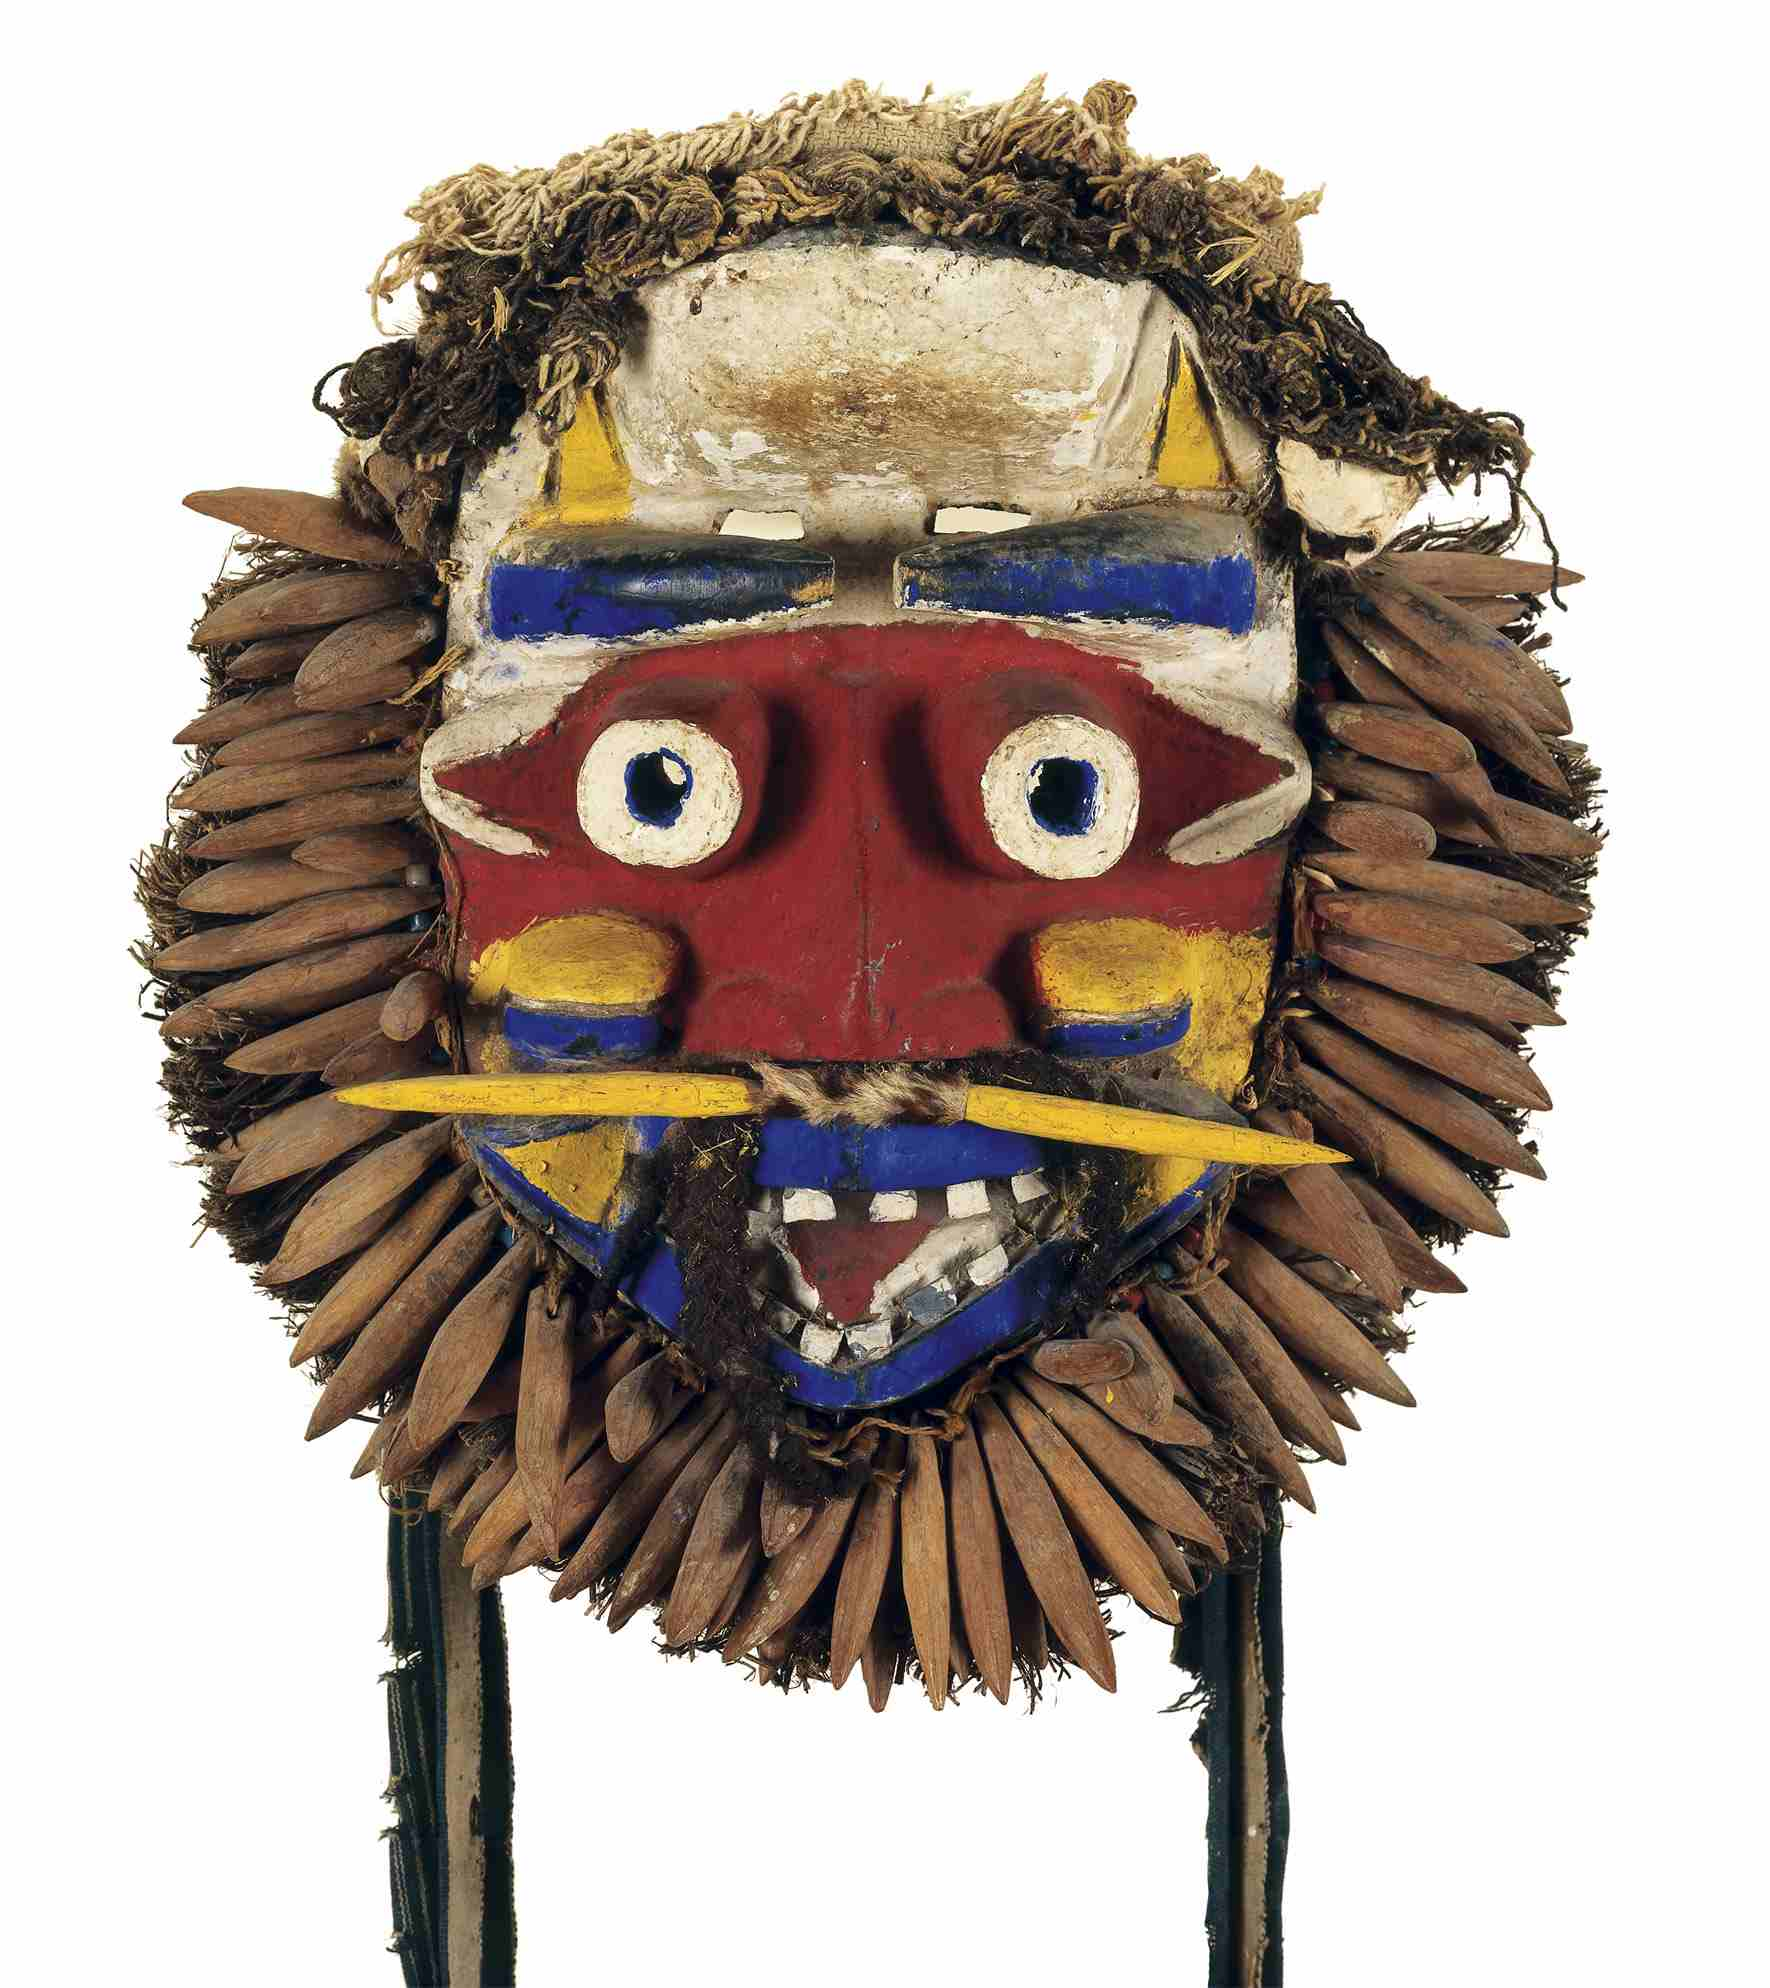 Mask of Wisdom (Gbona Gla). Wè region, Côte d'Ivoire and Liberia. Mid-20th century.  The Baltimore Museum of Art: Gift of Dr. and Mrs. Bernard Berk and Mr. and Mrs. Leonard Whitehouse, BMA 1969.11